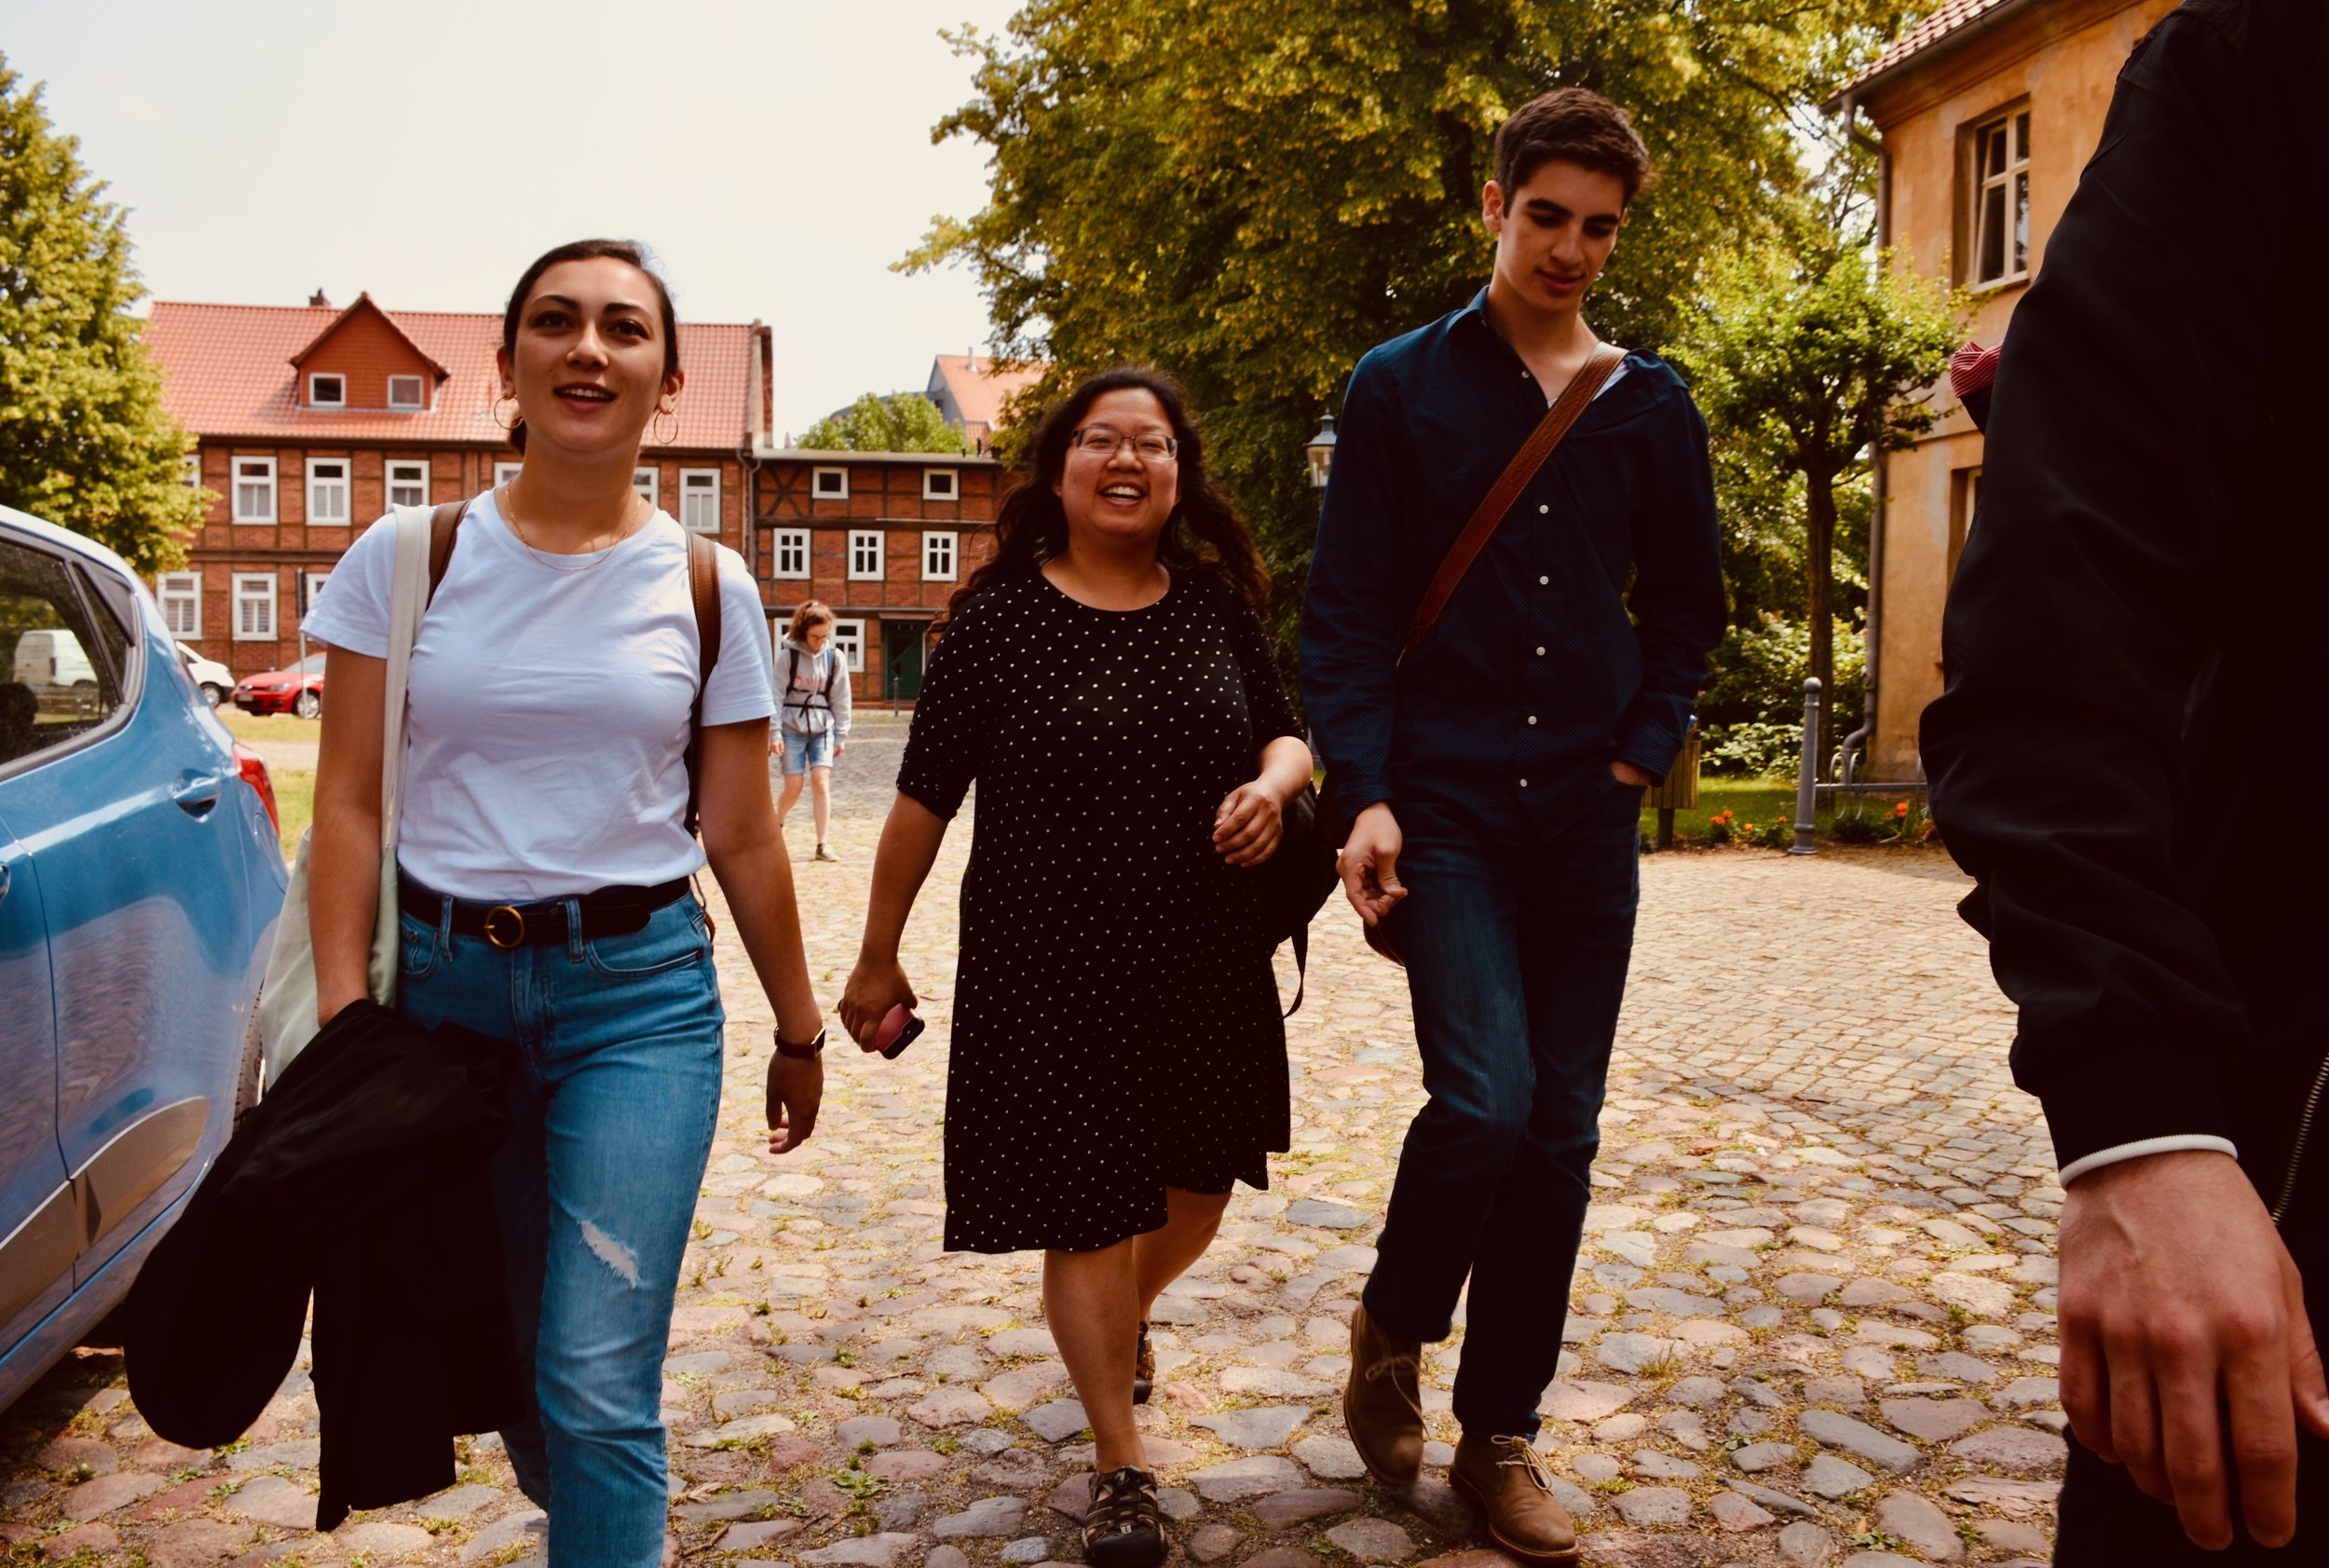 Meg Cutting Jennifer Hsiao, and Alex Marin are all smiles in Seehausen, Germany.